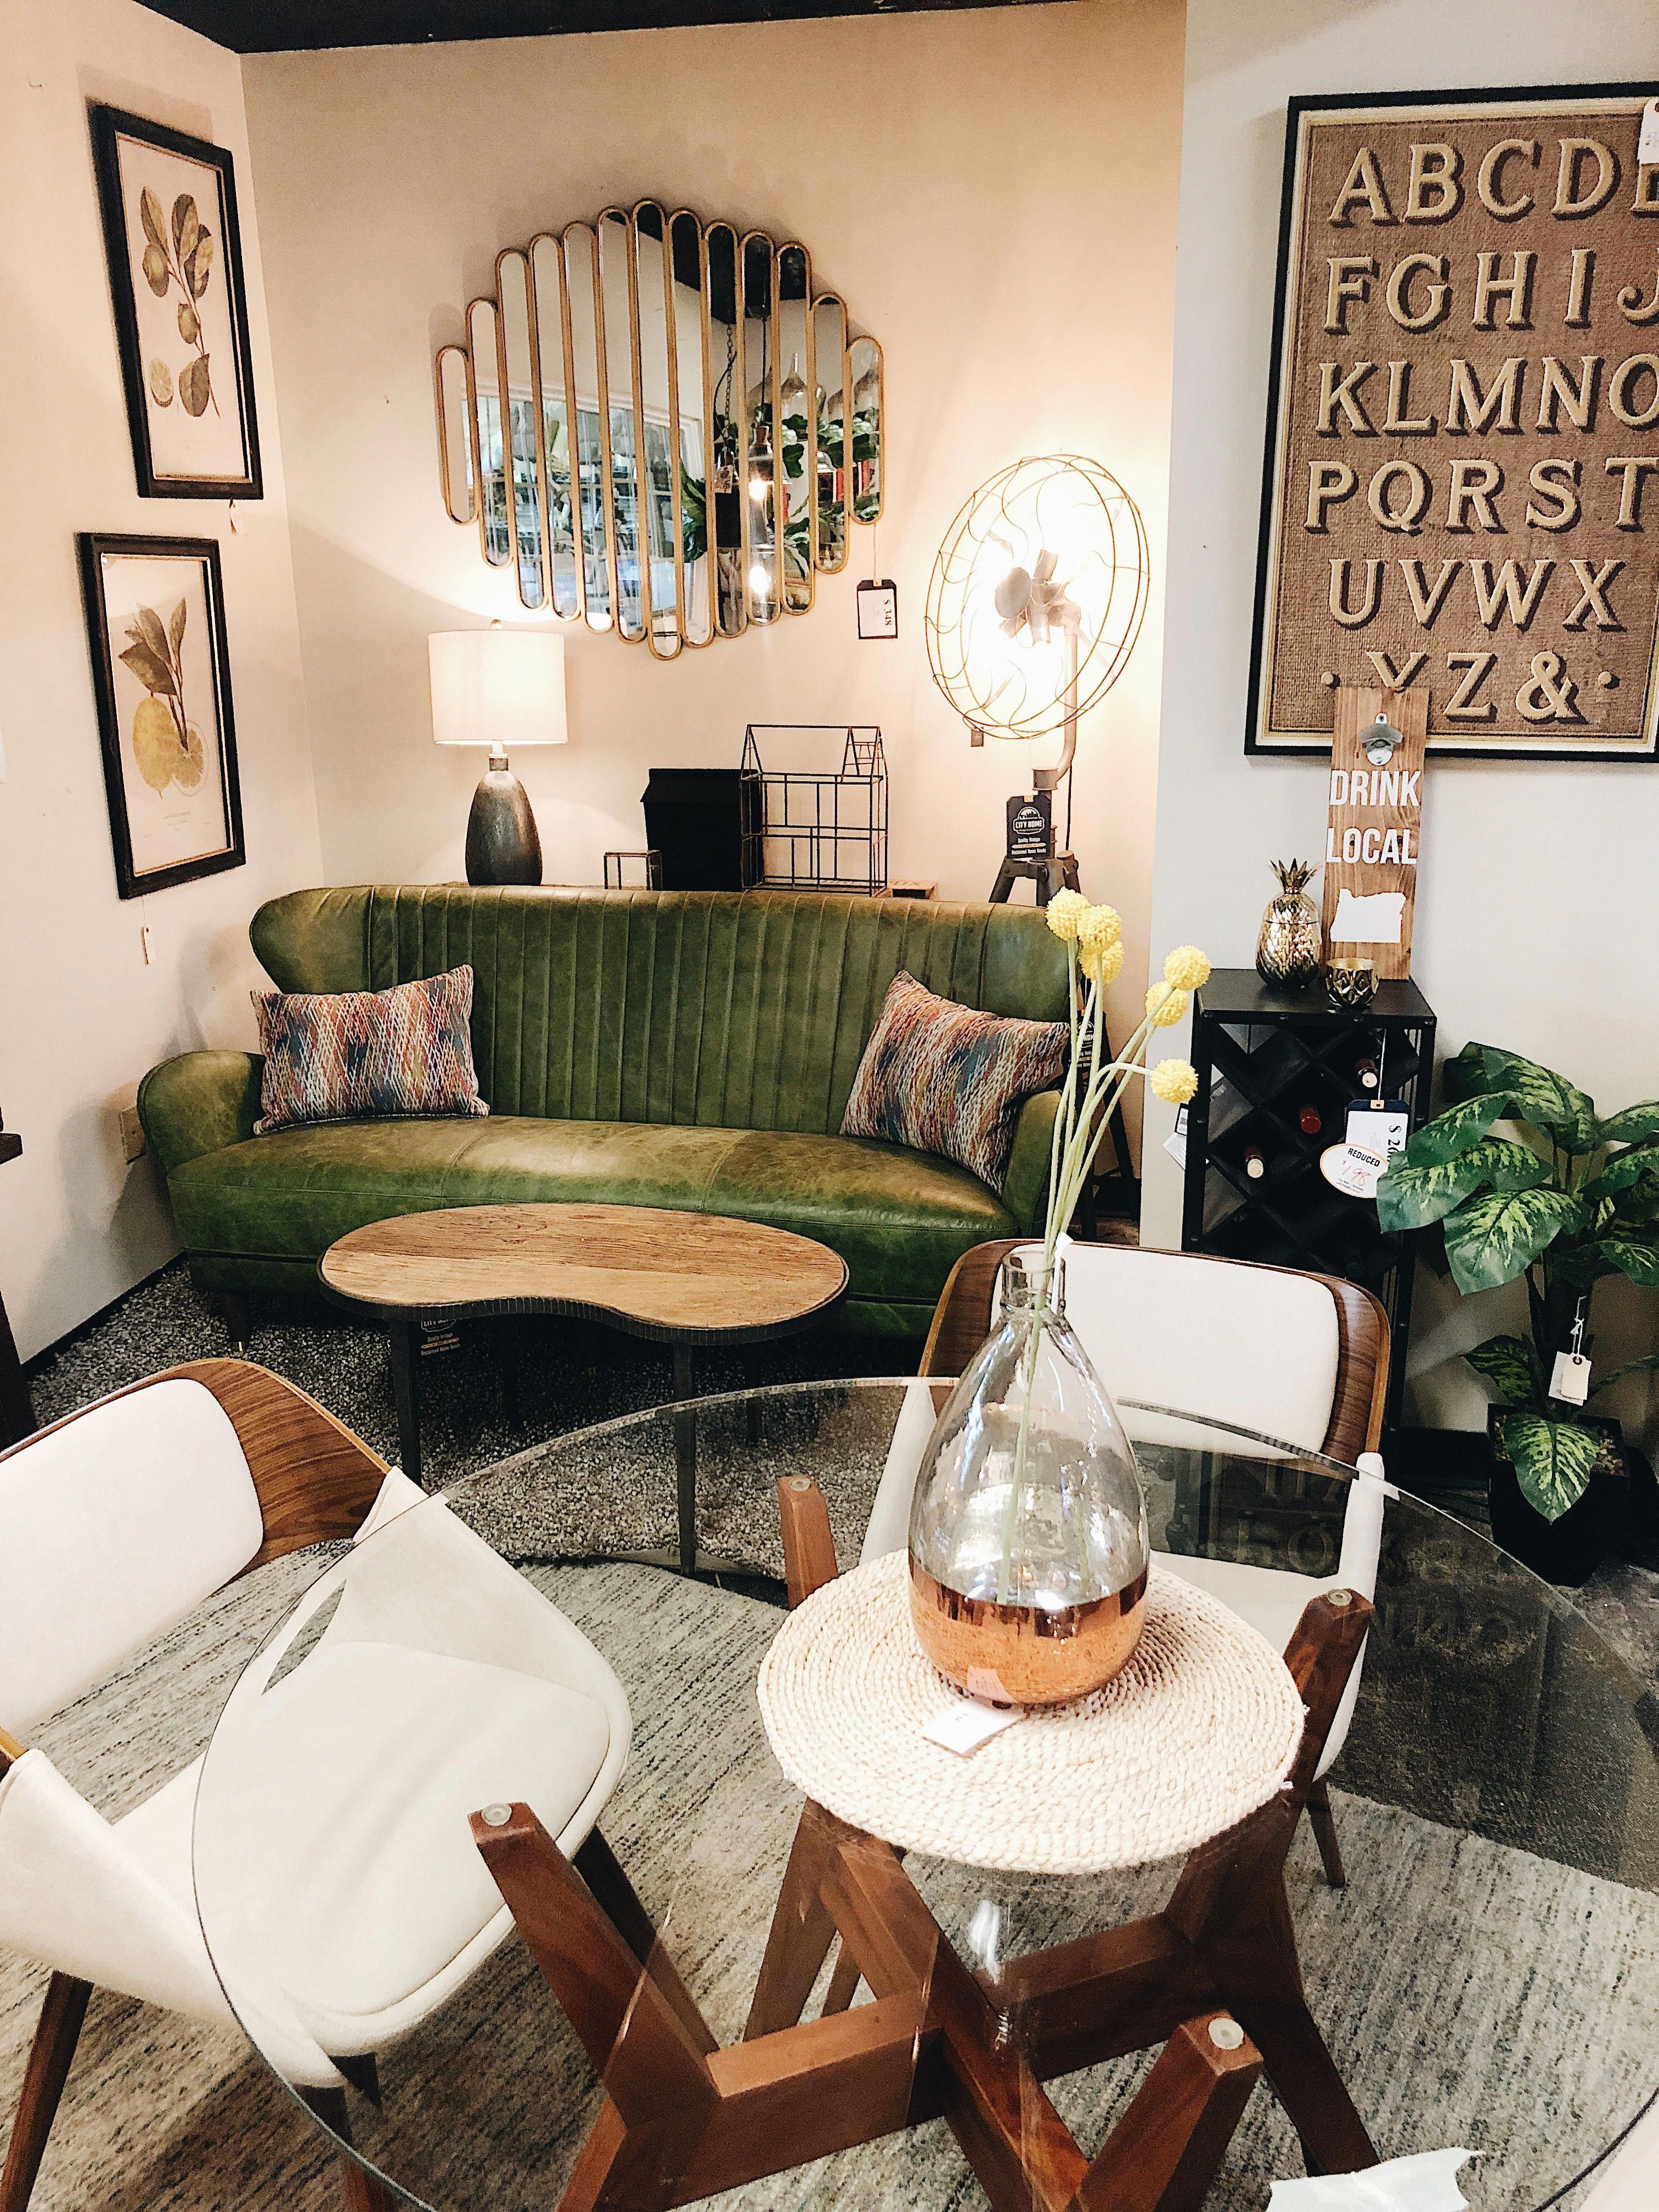 Shop mid century modern furniture and decor at city home in portland oregon interiordesignmagazine